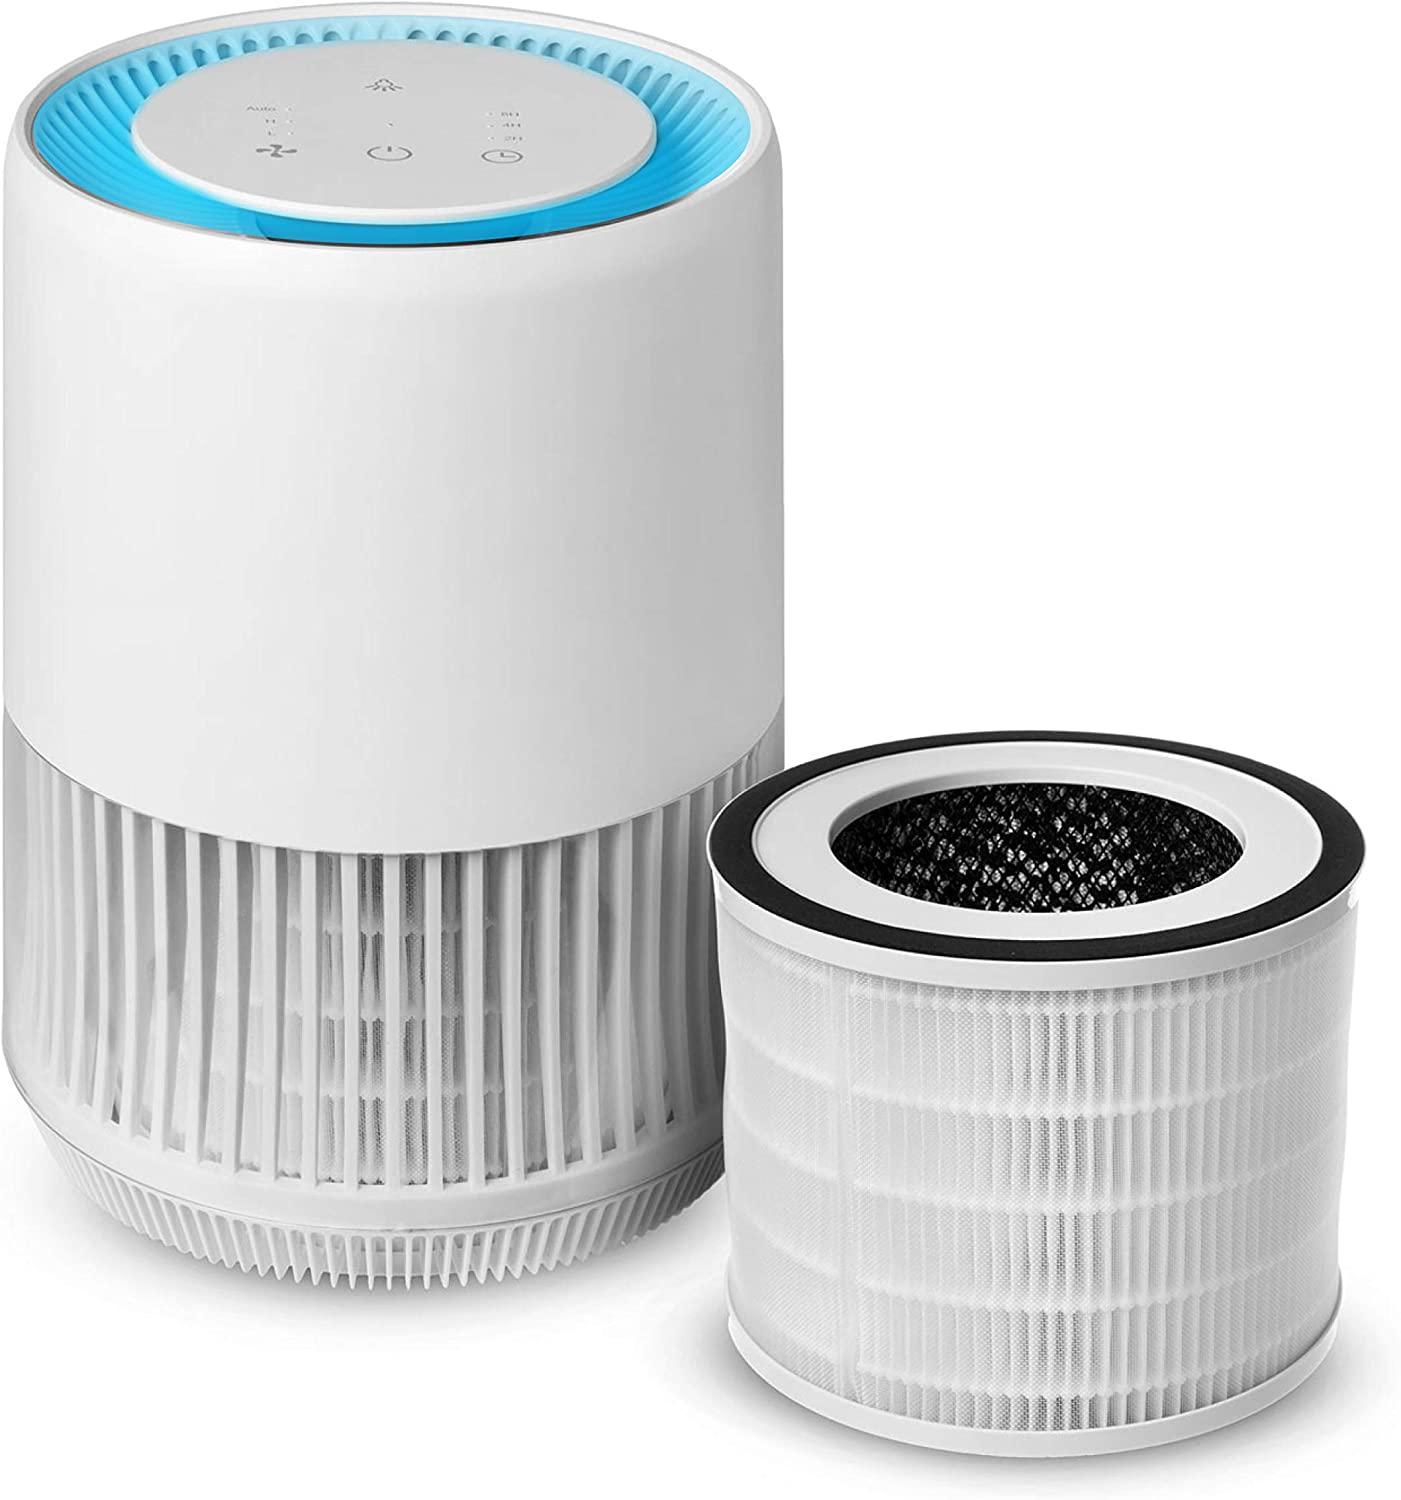 Compass Home Air Purifier - H13 True HEPA Filter 3-Stage Air Filtration with Auto Air Sensor Small Room Air Purifier